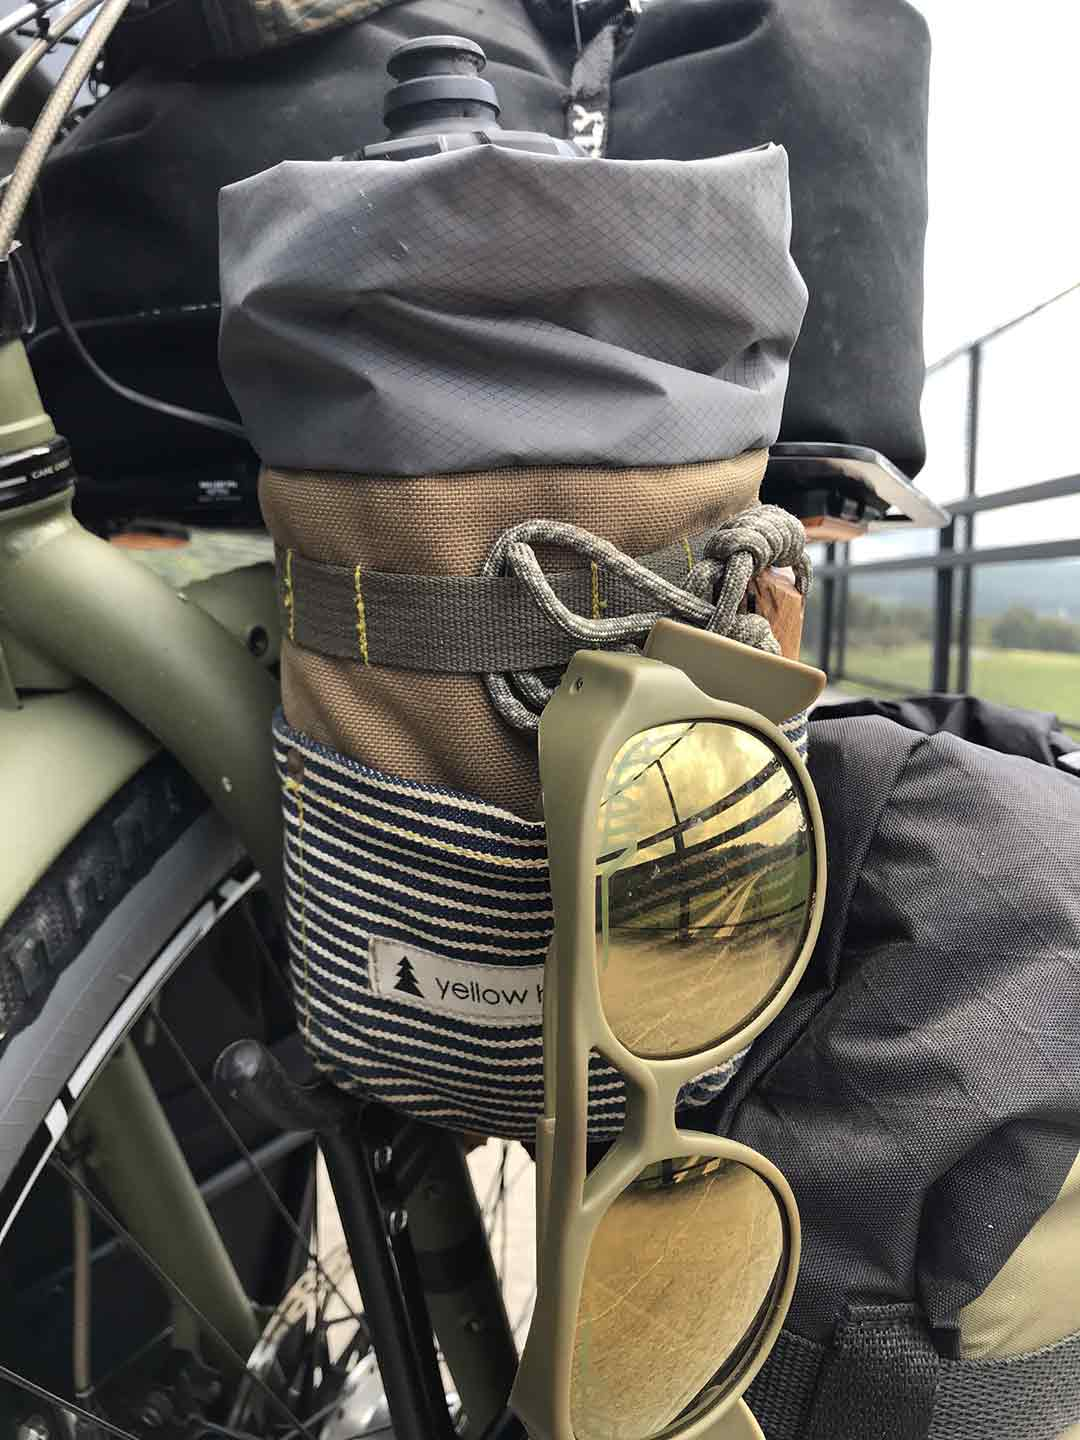 Water bottle bag with olive green mirrored sunglasses attached mounted to front bike fender